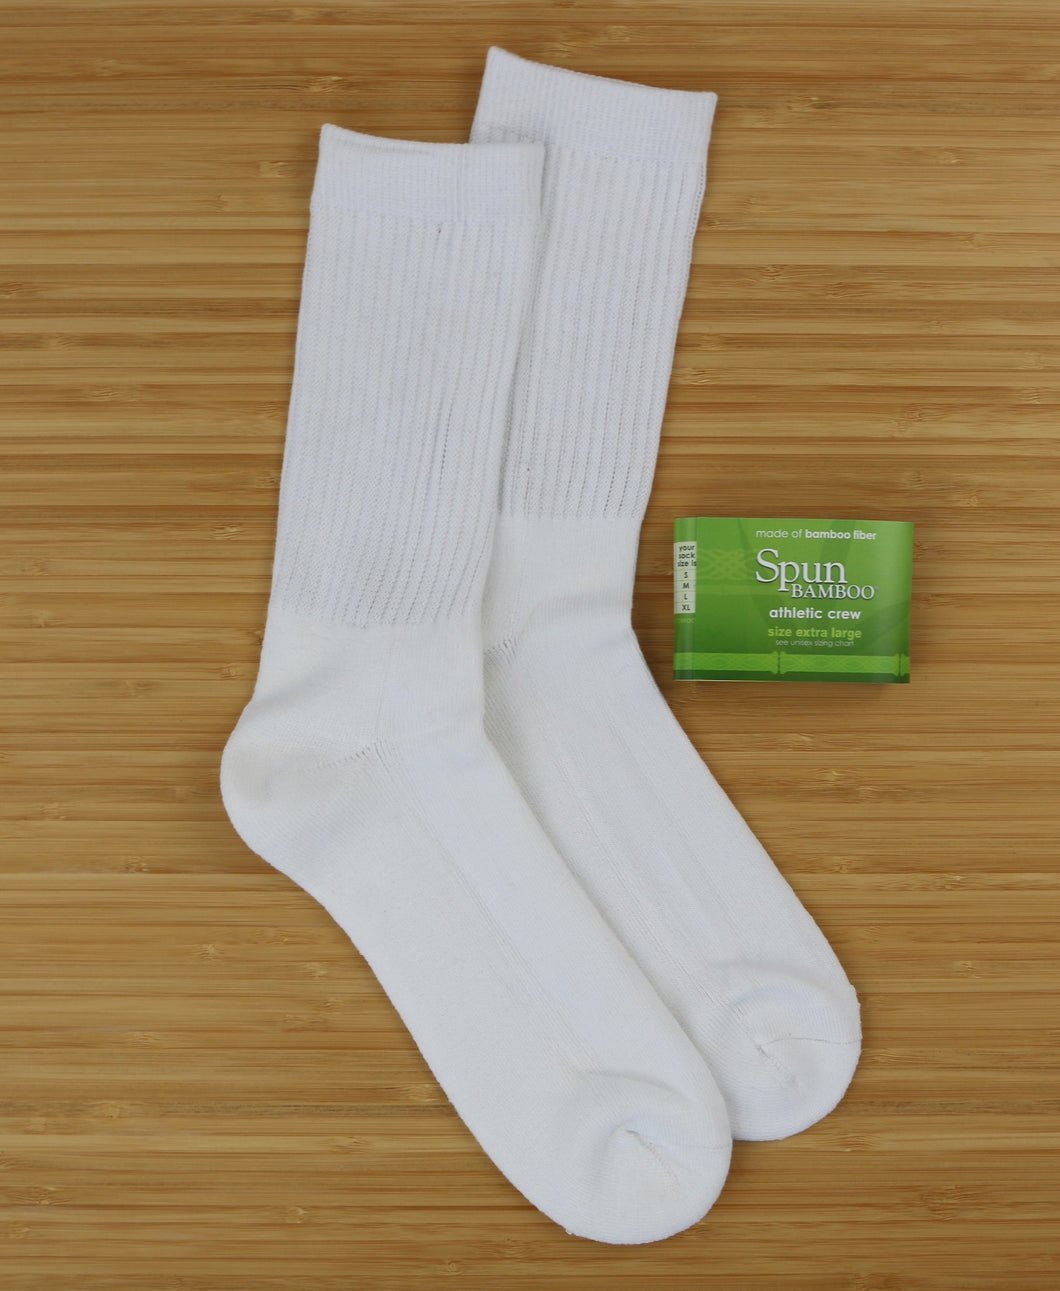 Clearance 3/4 Crew Athletic Bamboo Viscose Socks - White